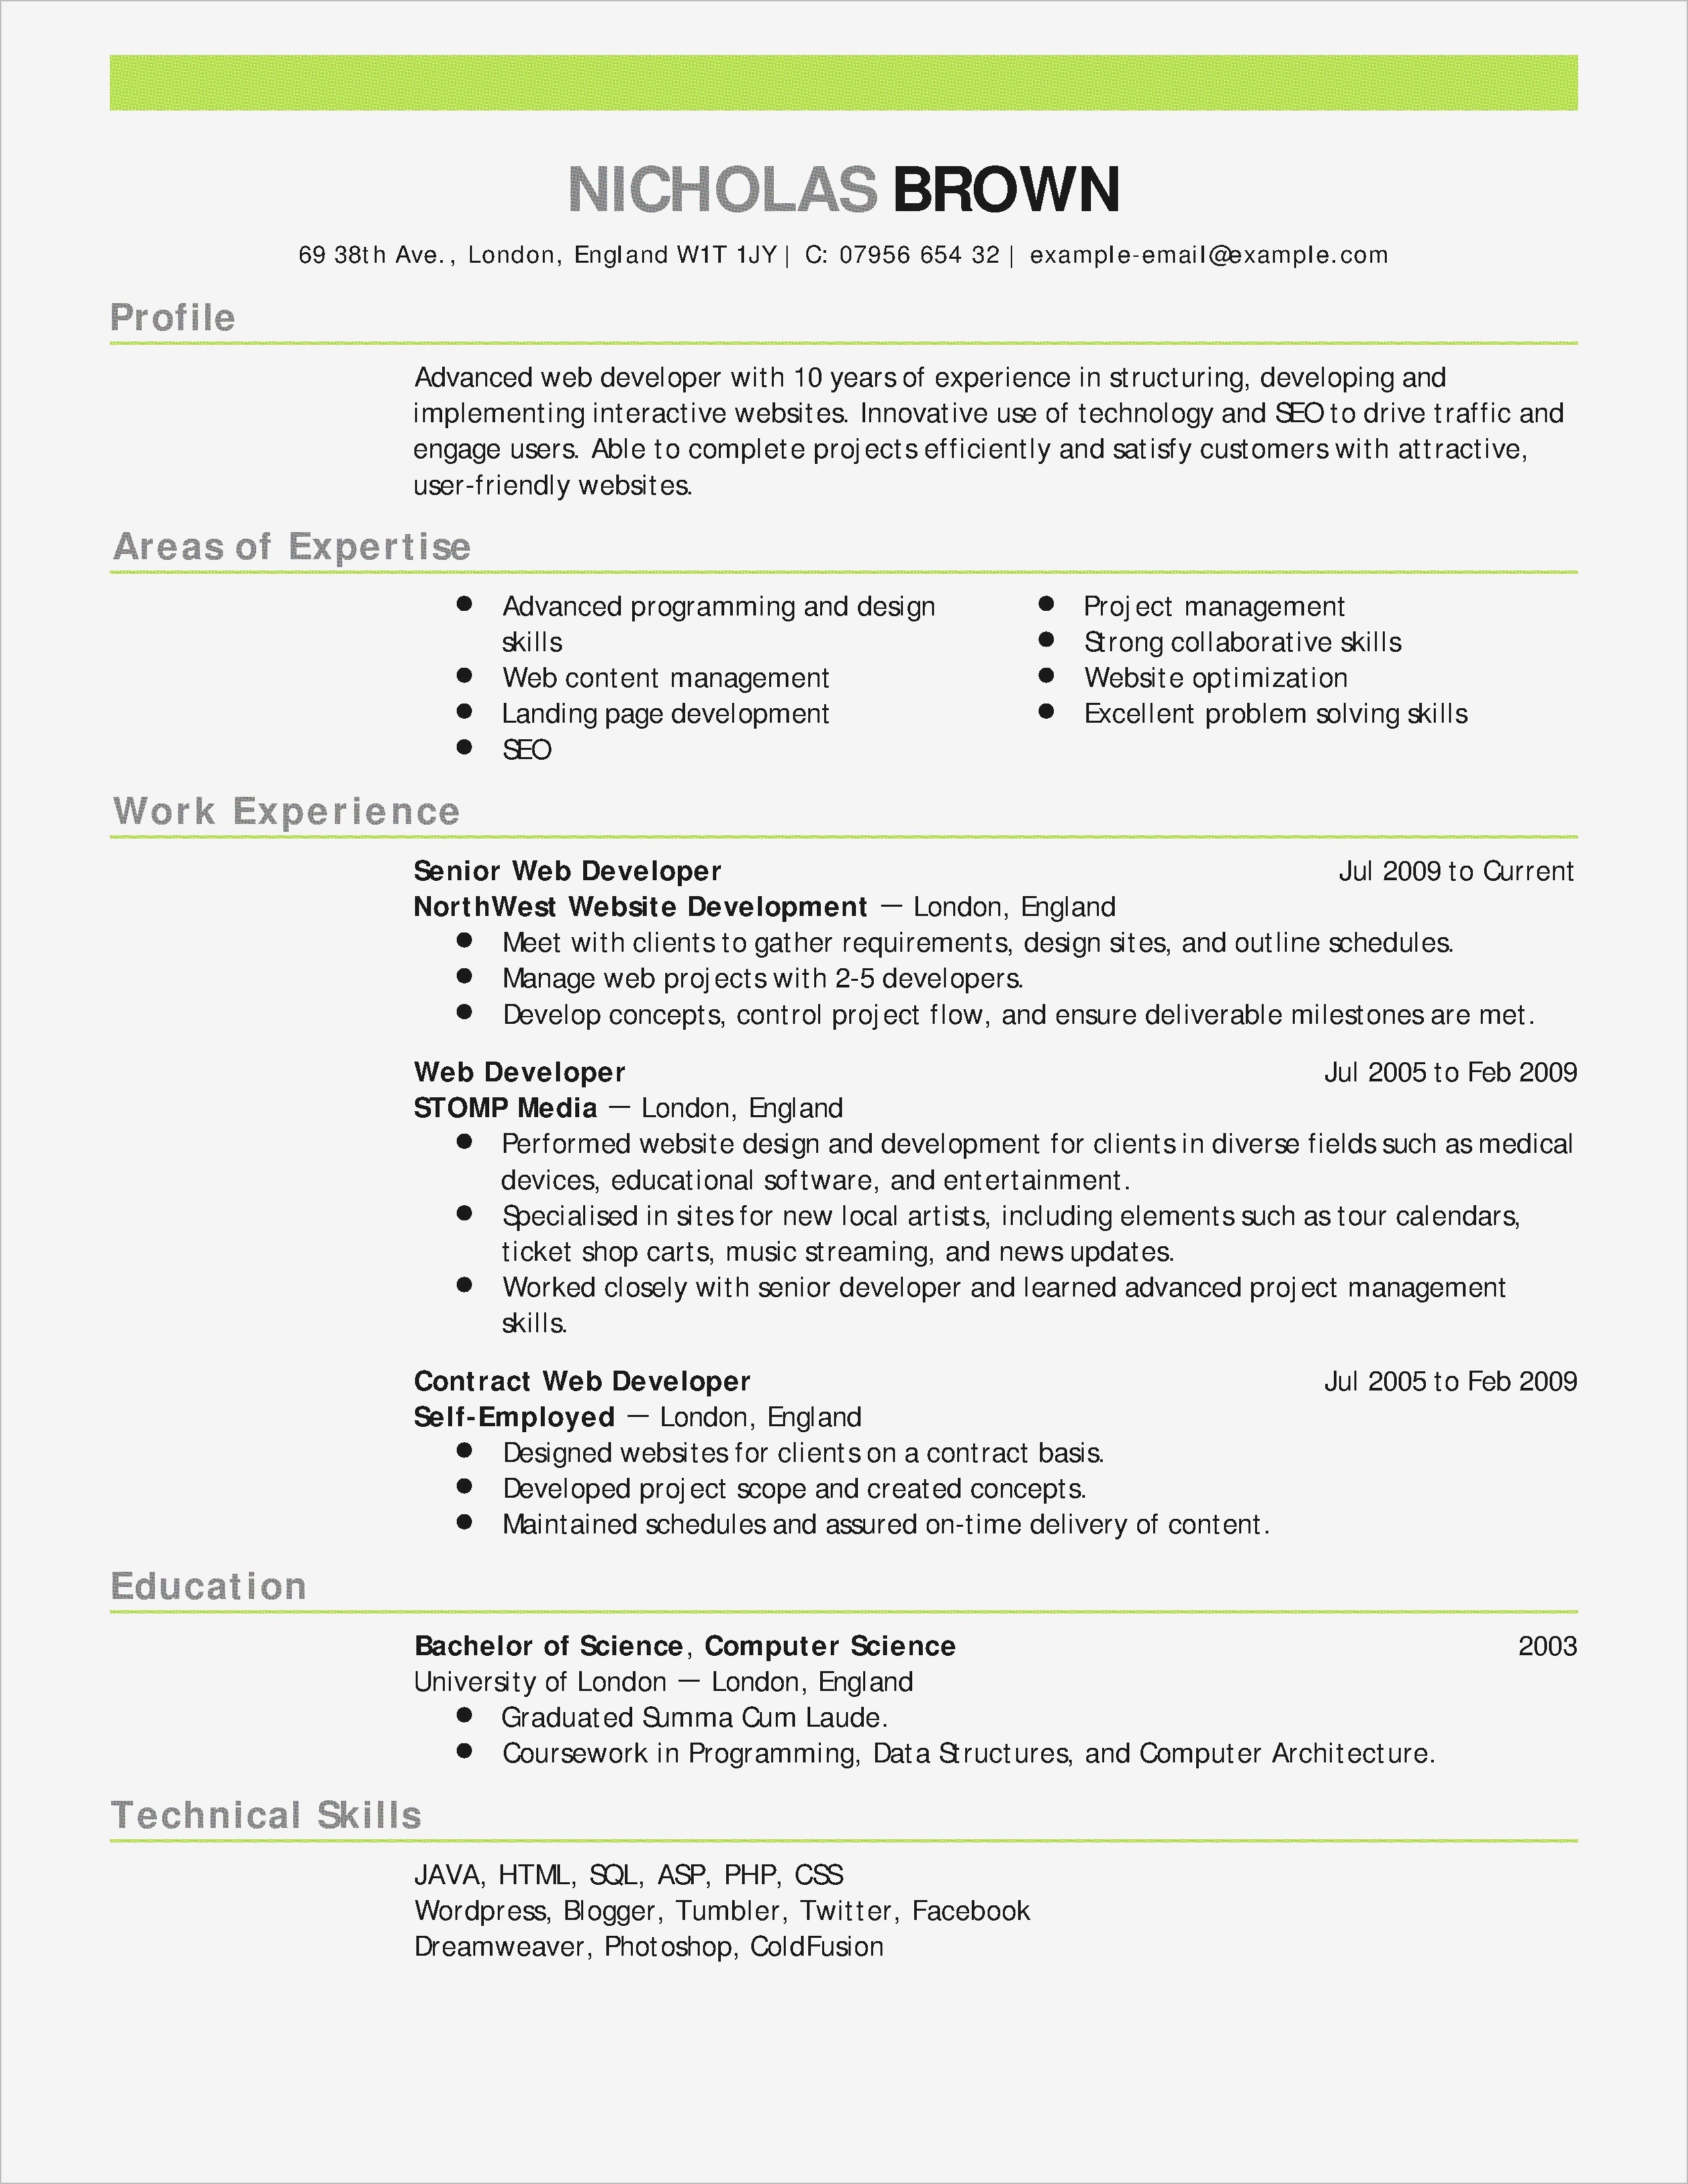 Resume References Page Sample - Maintenance Cover Letter Template Sample